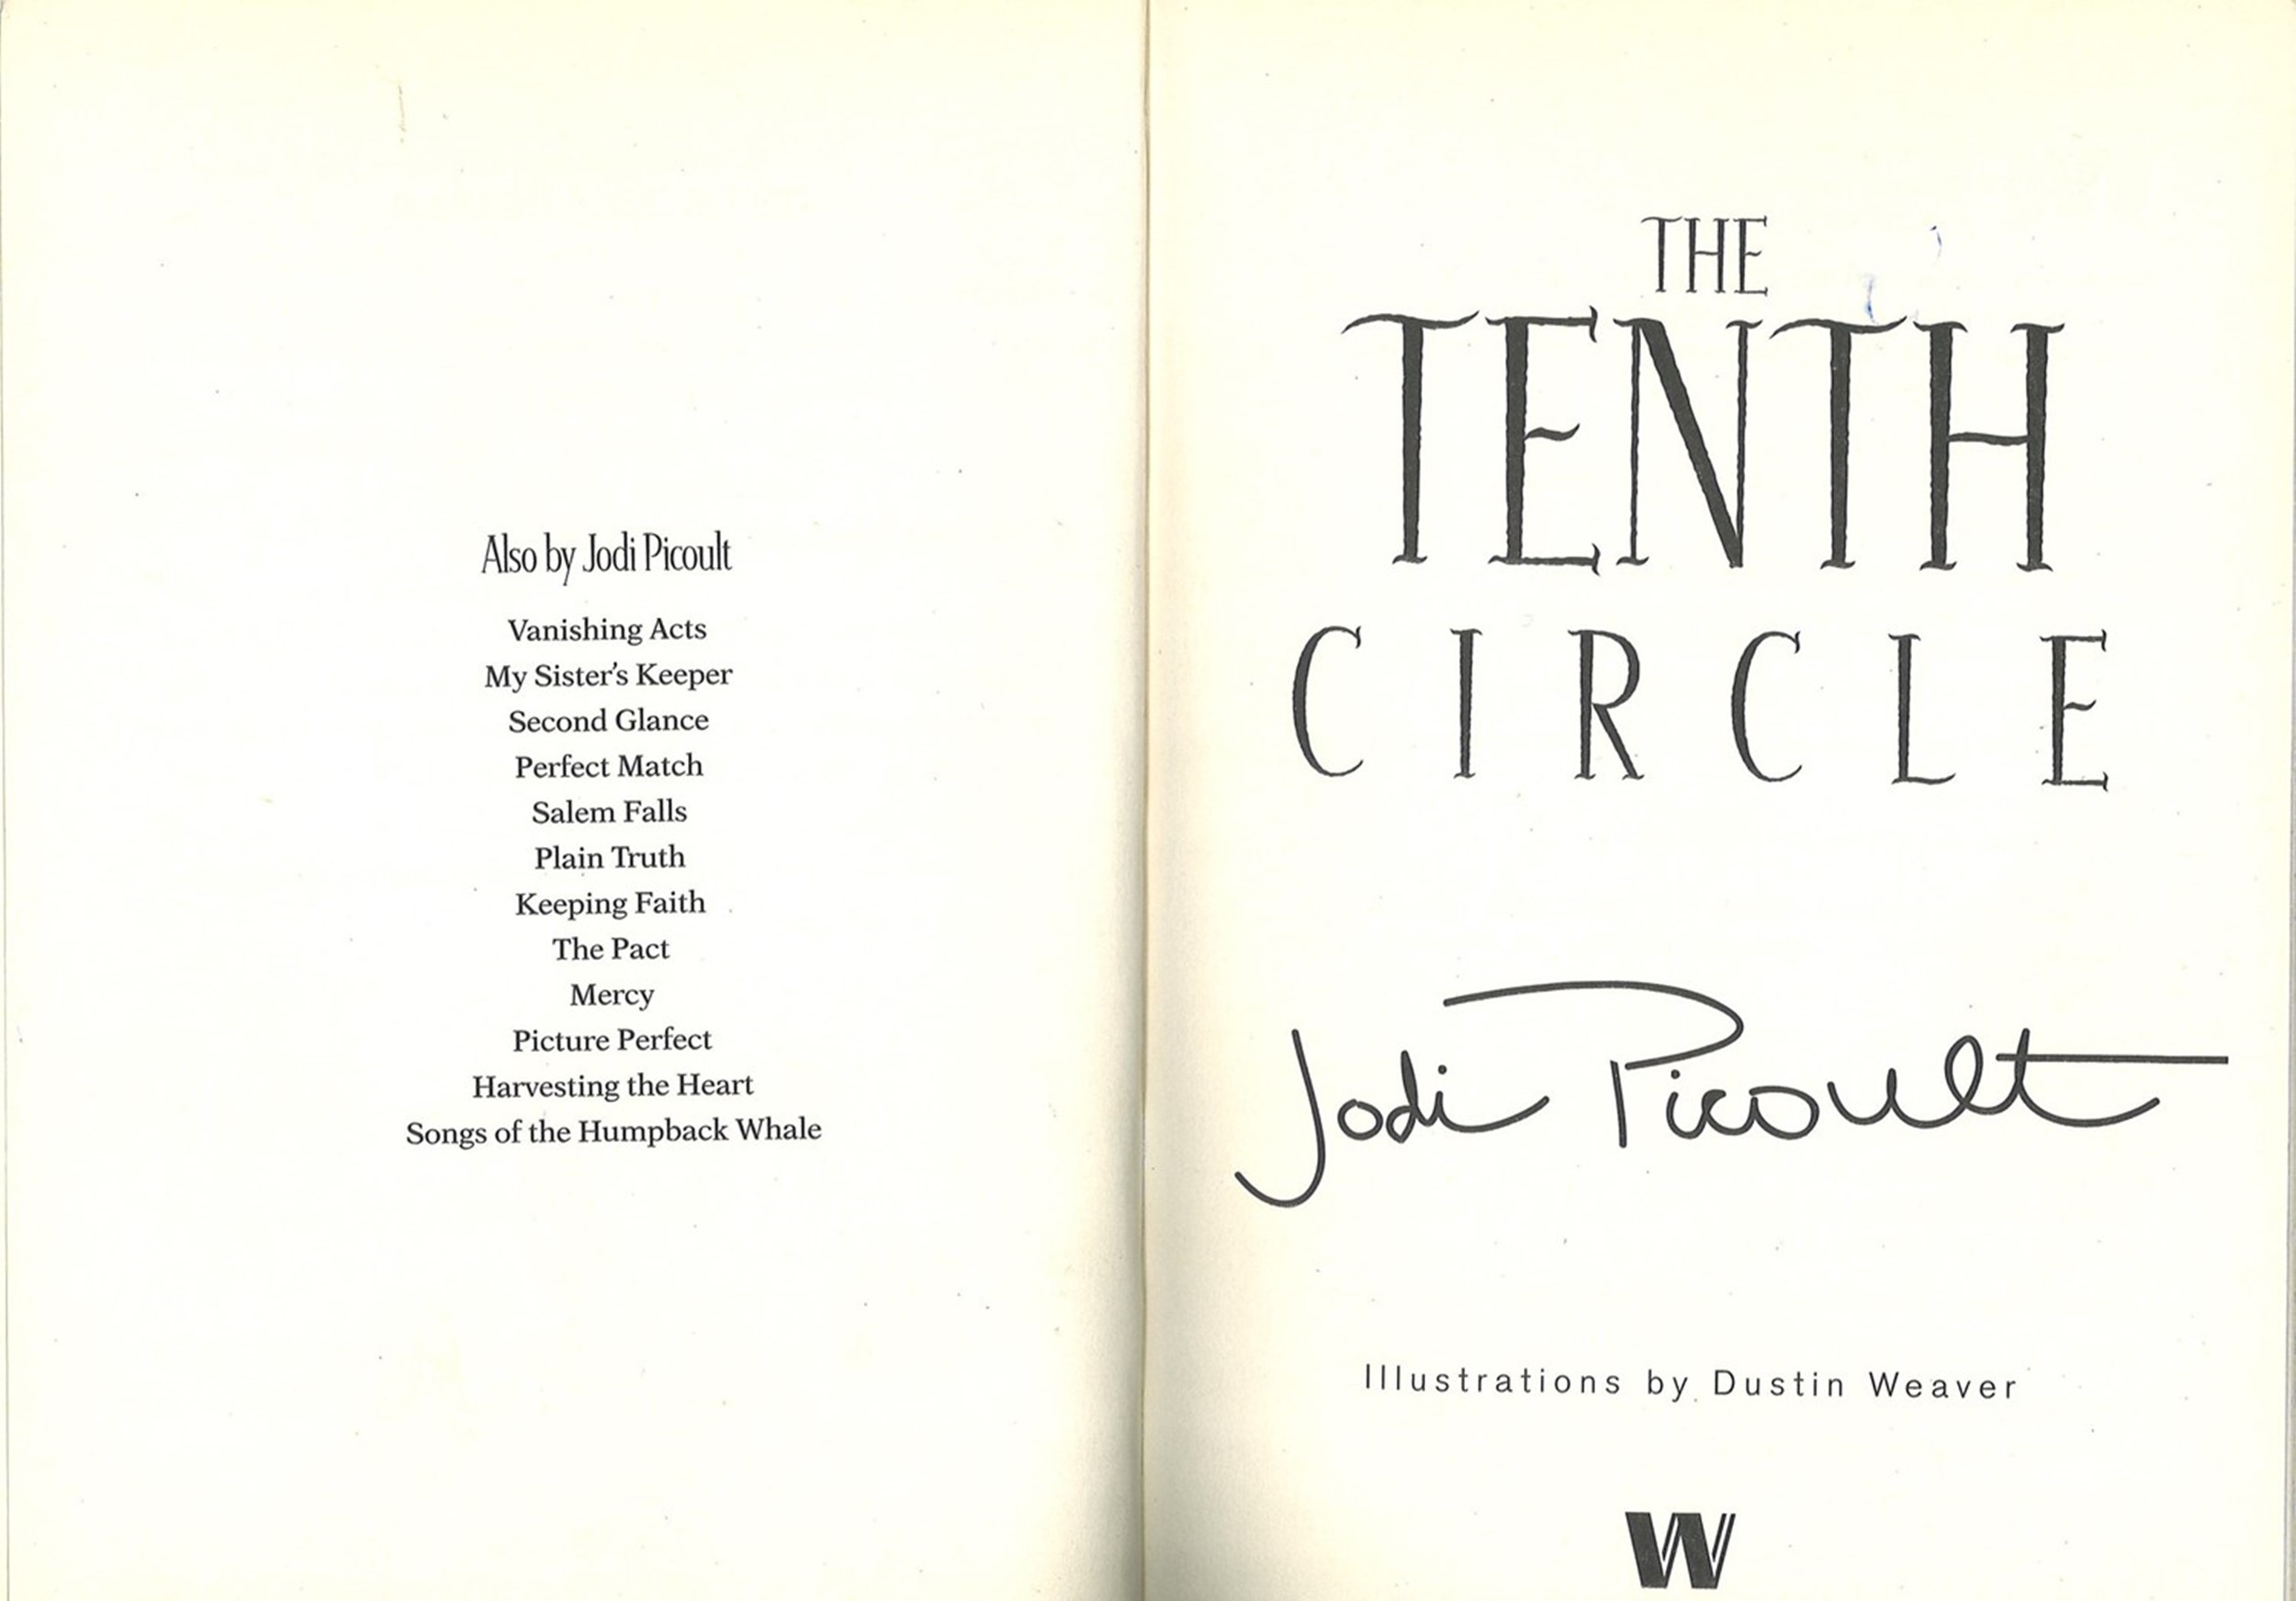 5 Signed Paperback Books, The Hunters Handbook, The Tenth Circle, Monkey Joe, The Sirens of - Image 6 of 6